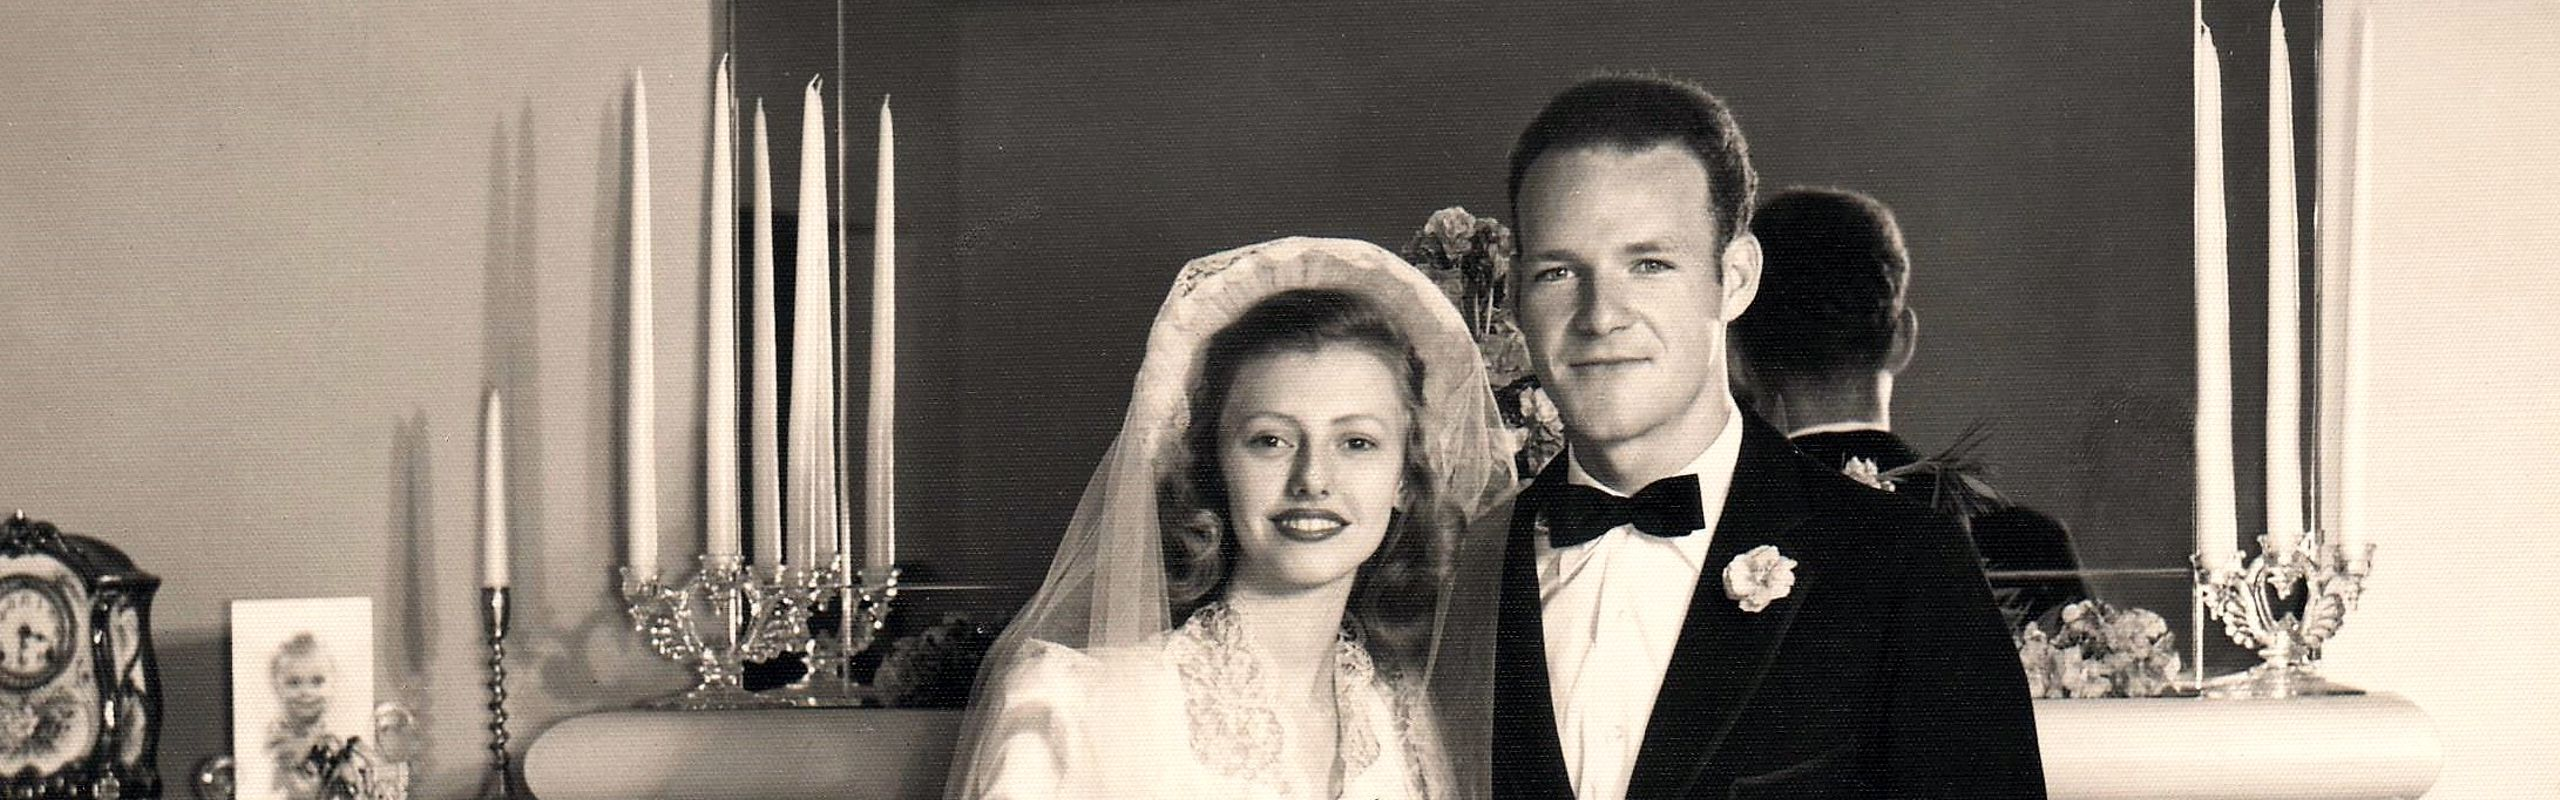 Jim & Joyce Van Schaack Wedding Photo